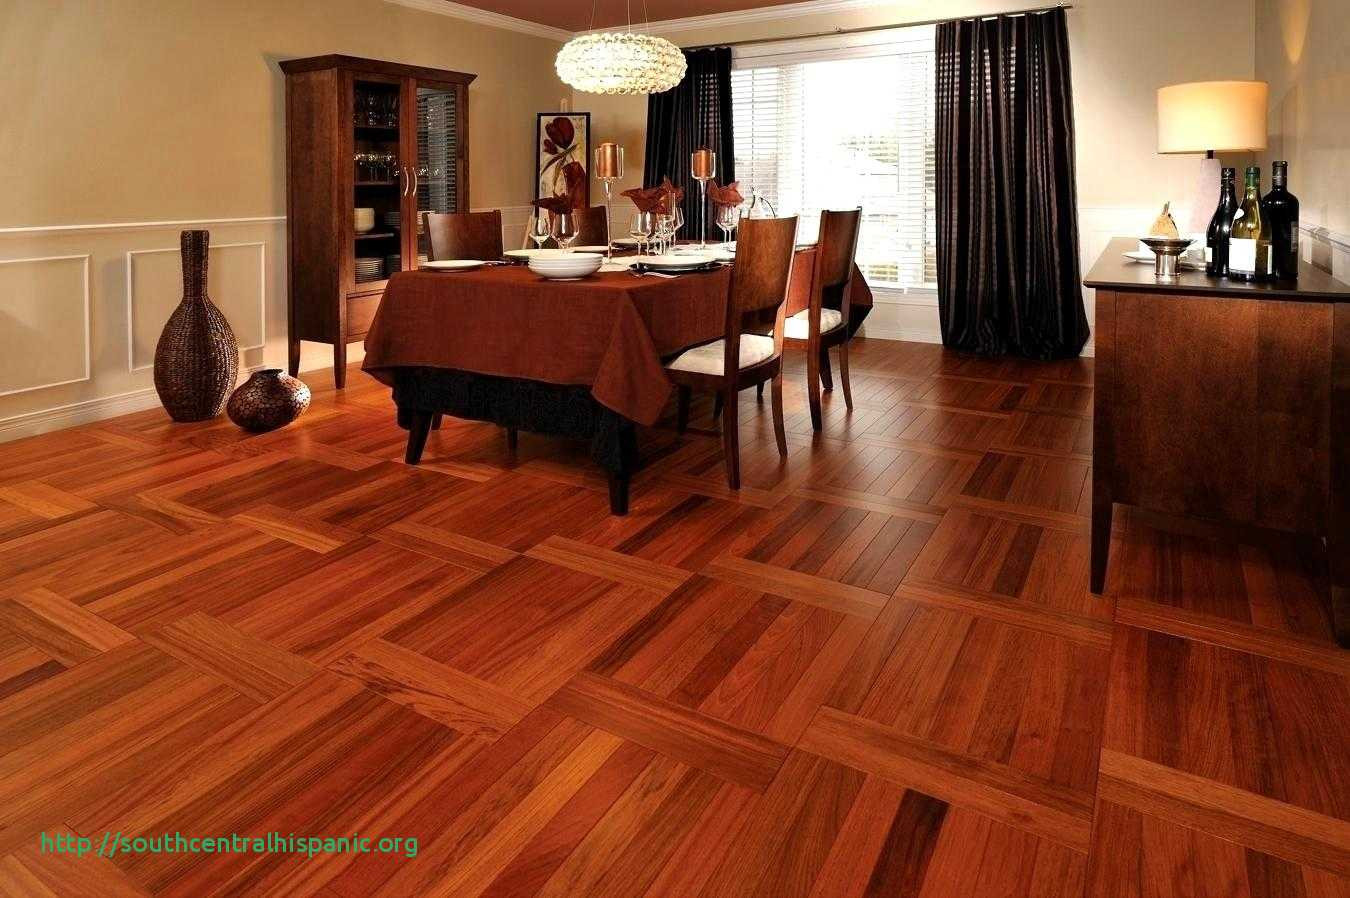 mirage hardwood flooring prices of kitchen flooring bruce hardwood kuxniya regarding bruce hardwood flooring company meilleur de breathtaking kitchen design bruce hardwood floors ideas ty